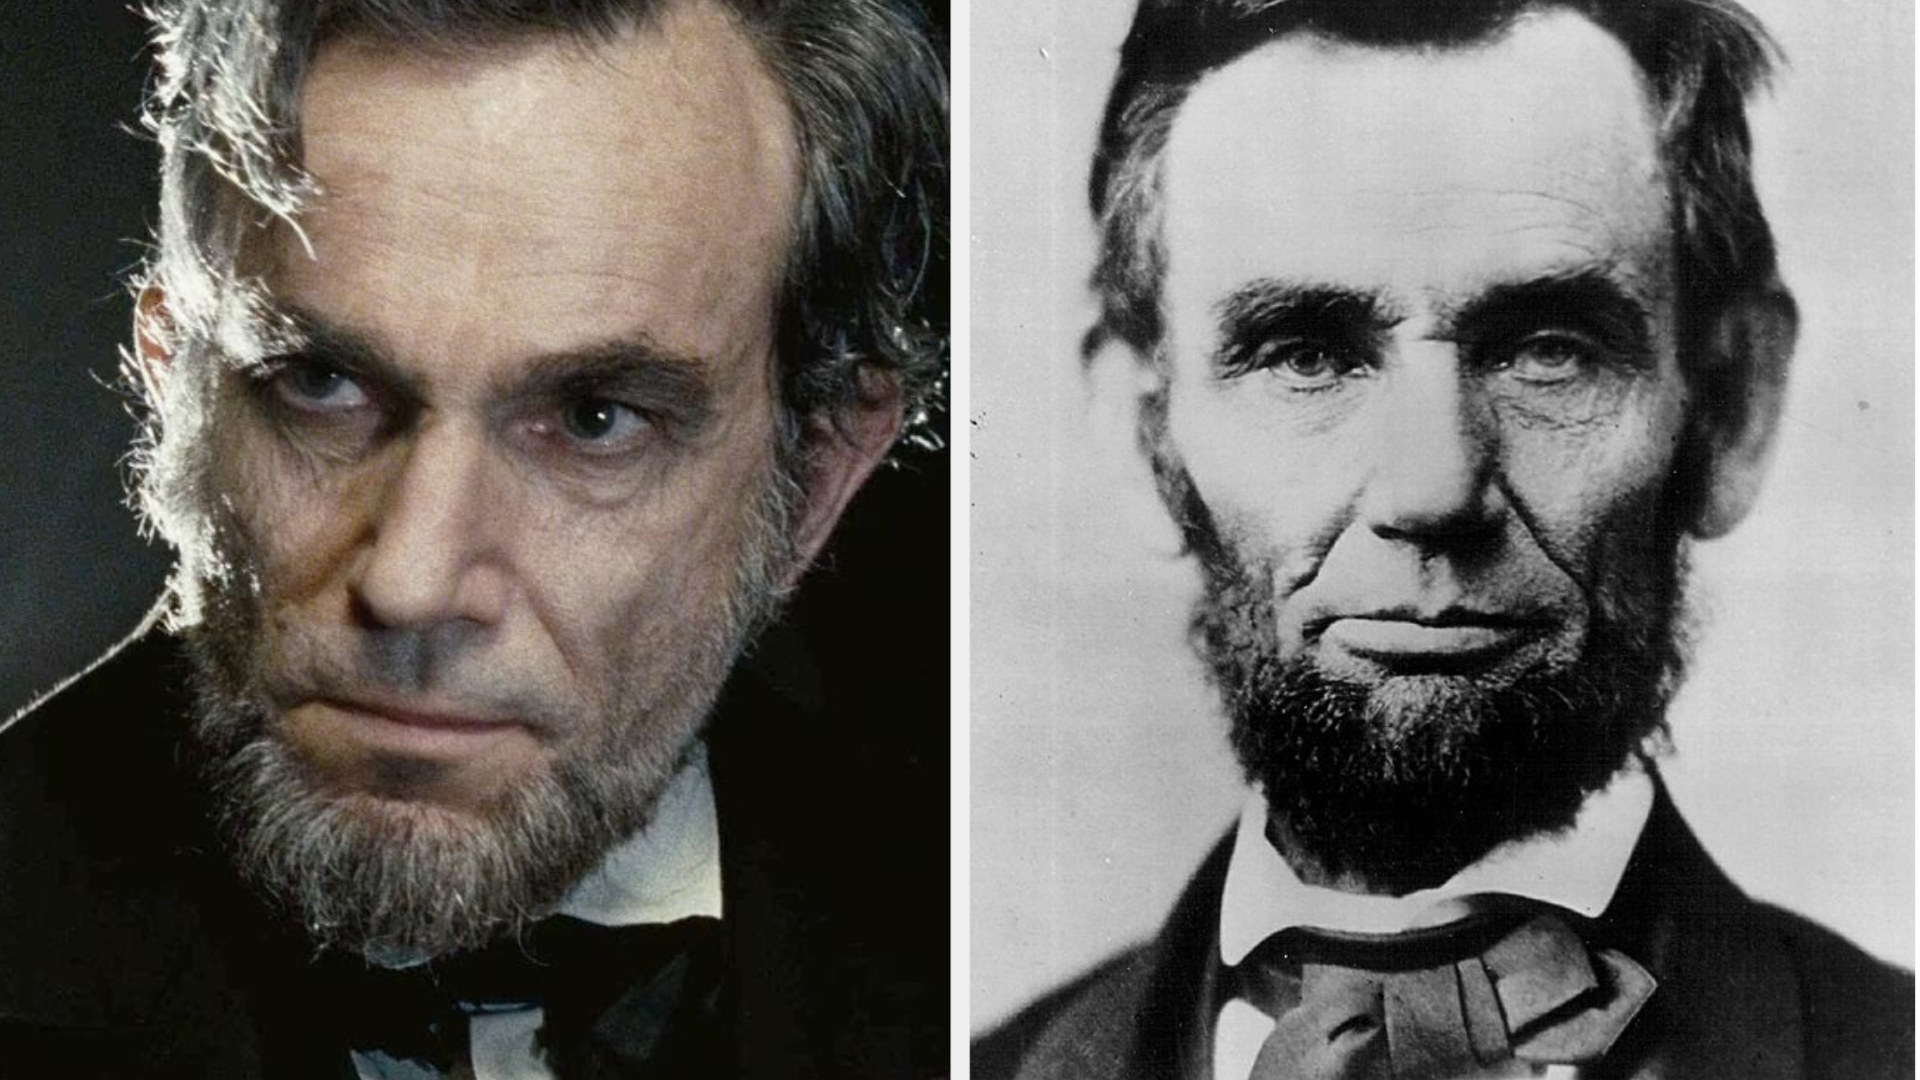 Daniel Day-Lewis as Abraham Lincoln, staring at someone in a serious manner, looking old and tired, wearing a suit; portrait of Abraham Lincoln from the 1860s, serious expression on his face, full beard, wearing suit